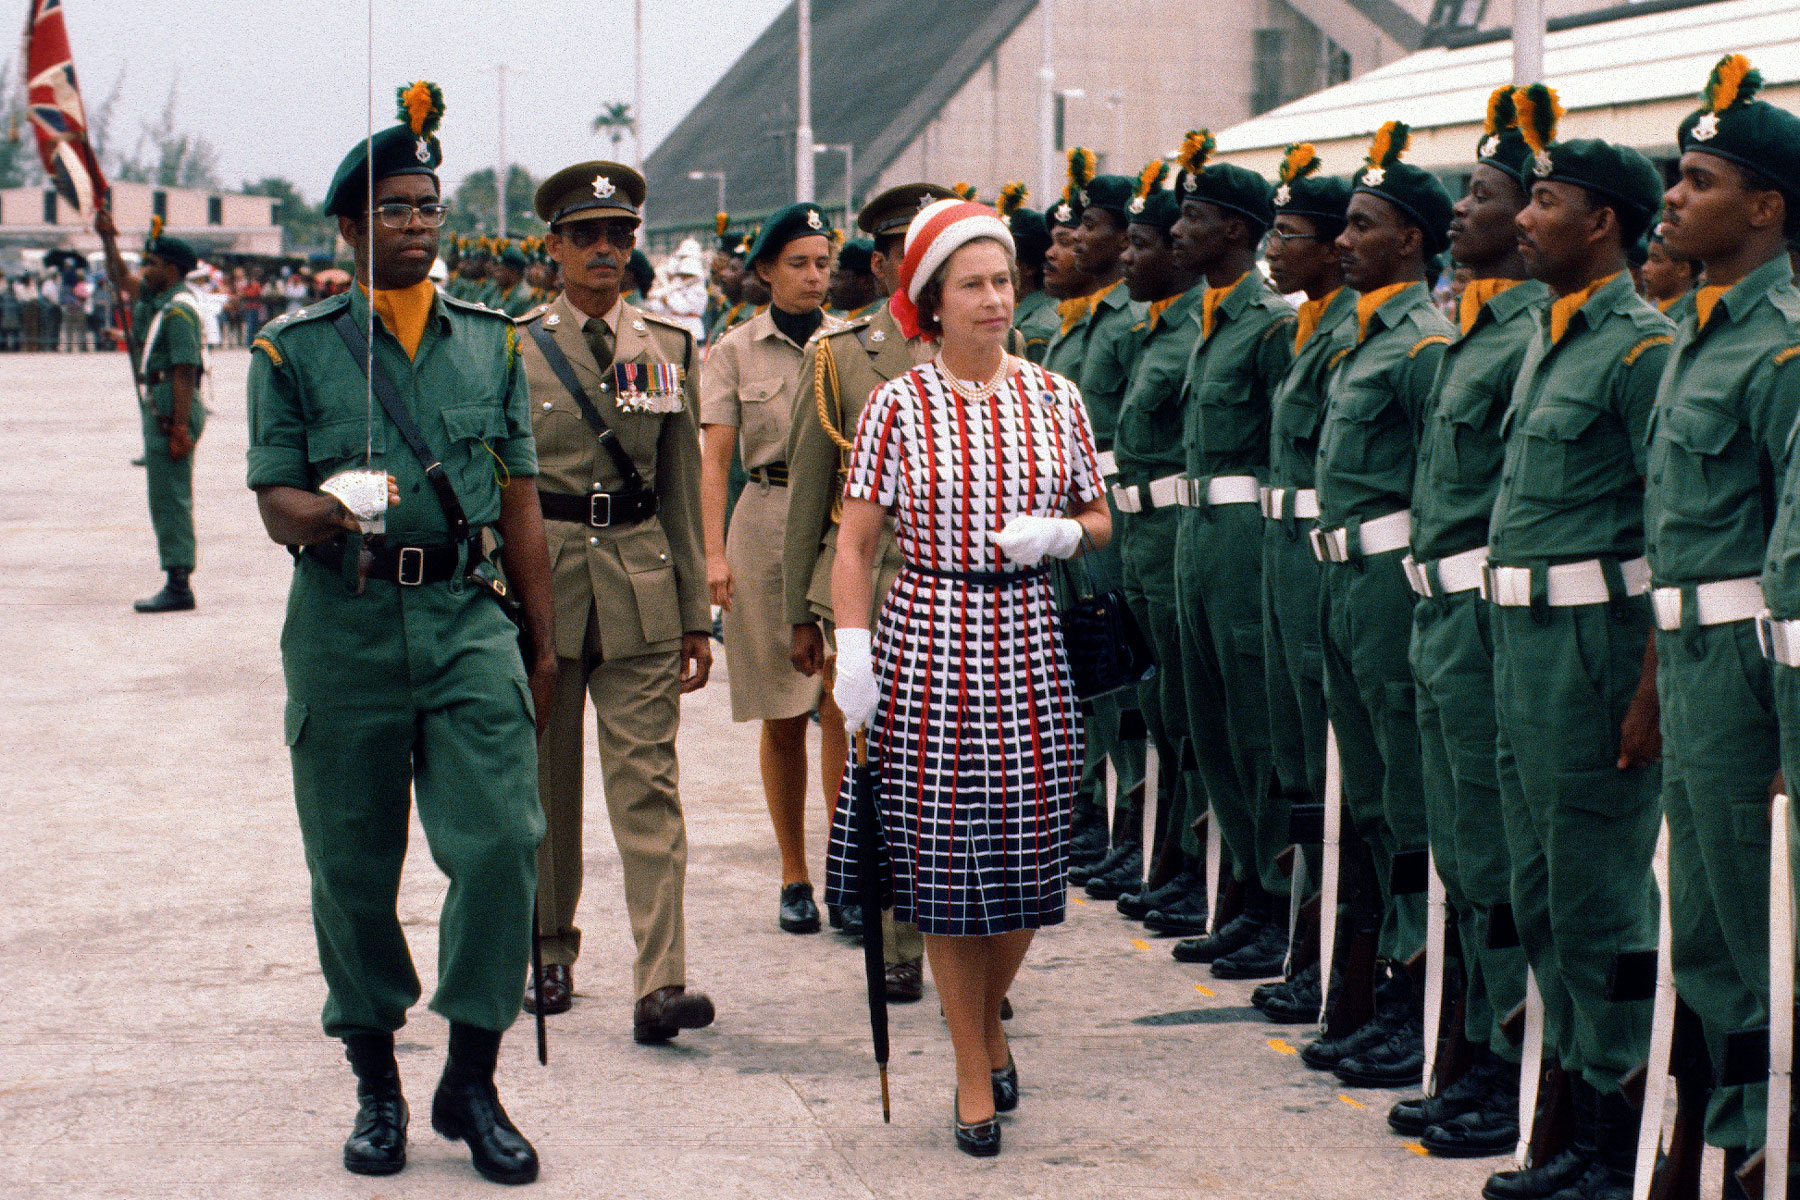 Queen Elizabeth II inspects a guard of honour as she arrives in Barbados